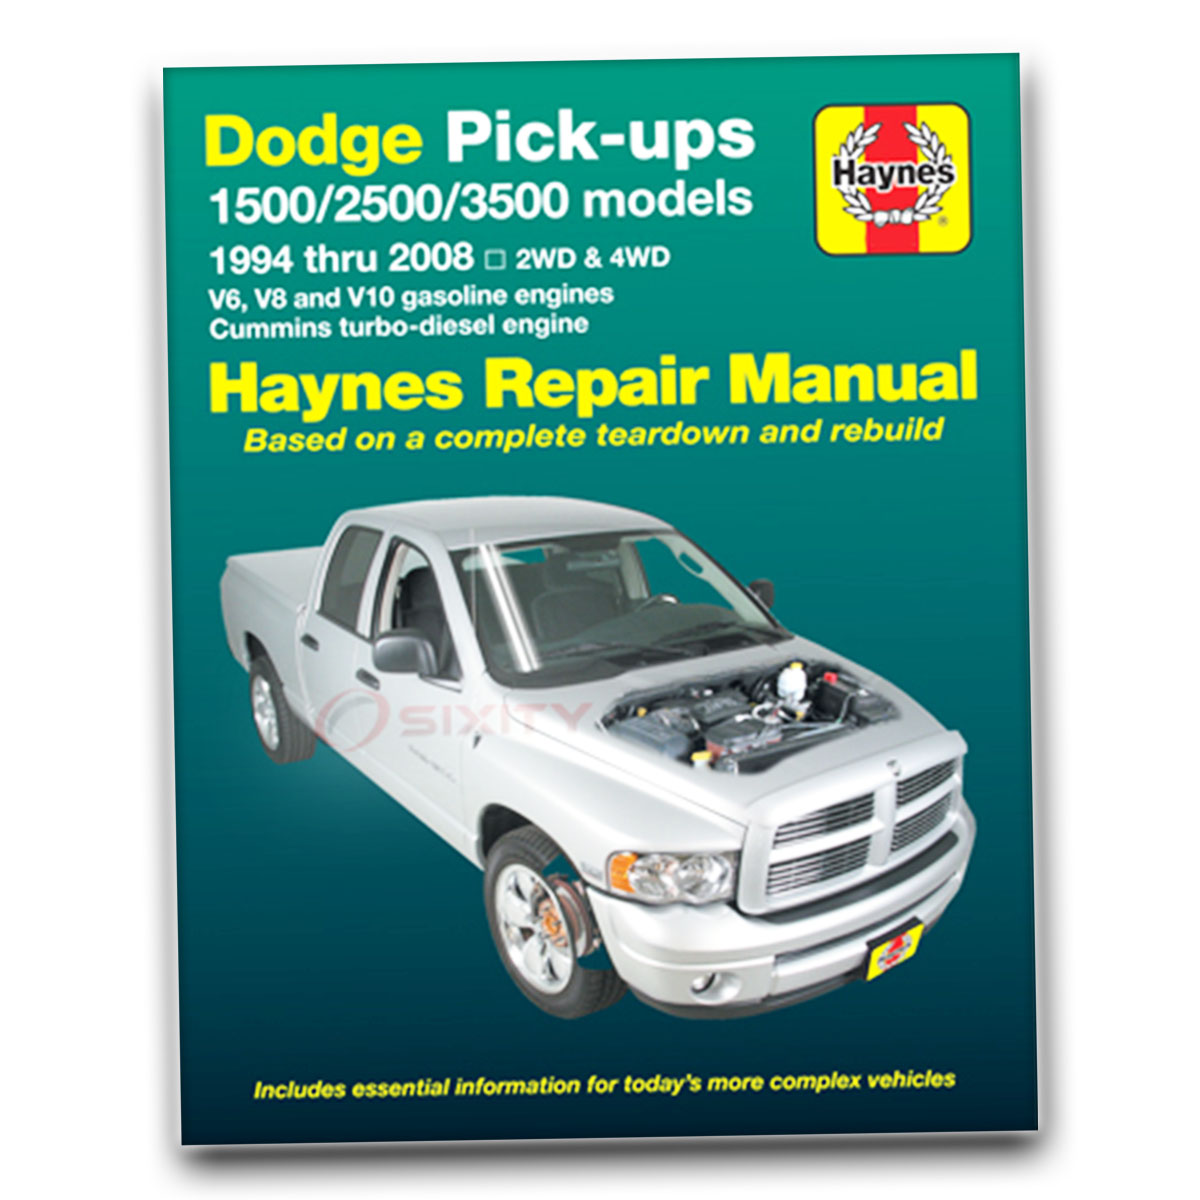 Haynes Repair Manual For 1994-2008 Dodge Ram 1500